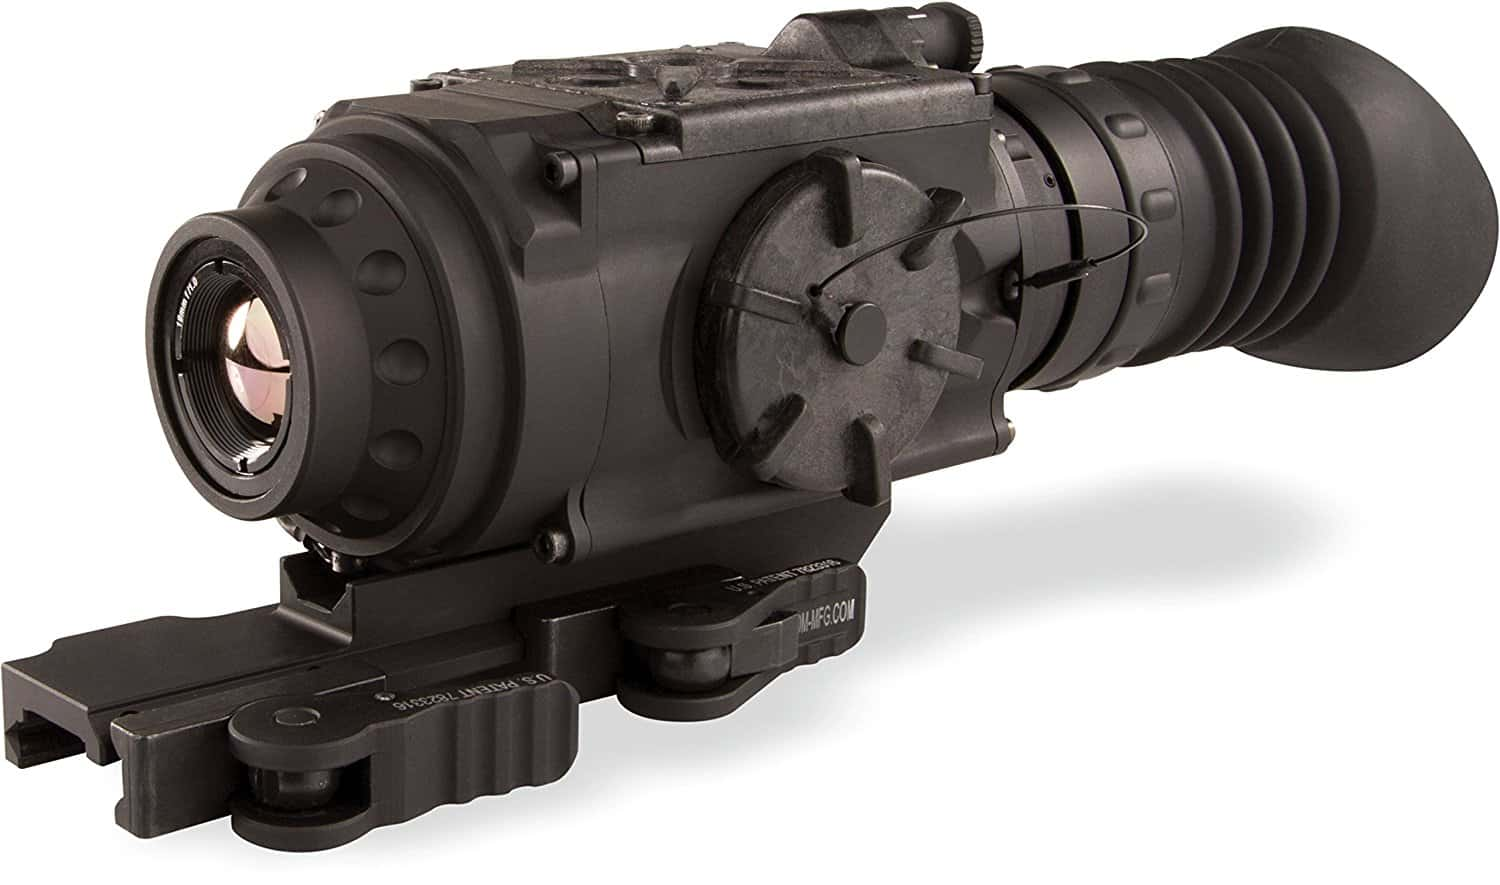 FLIR Thermosight Pro Thermal rifle scope